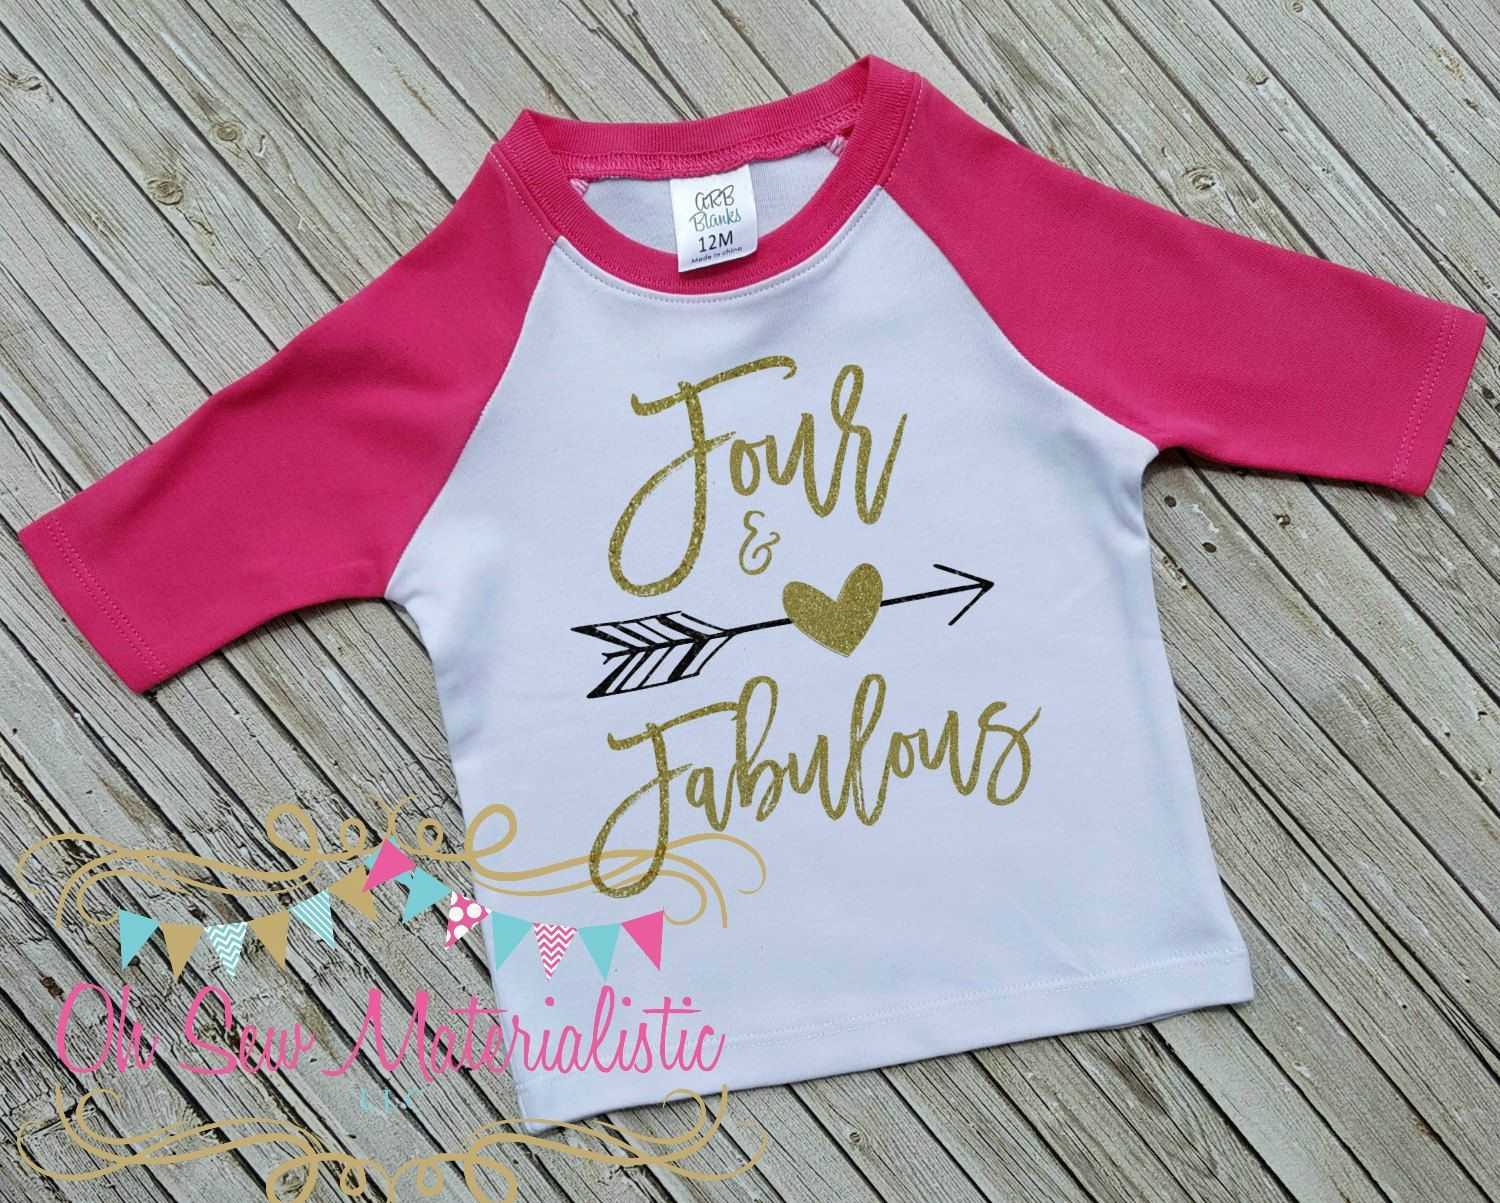 Design your own t-shirt hot pink - Personalized Girl S Heat Pressed Gold And Black Glitter Vinyl On Hot Pink Raglan Four And